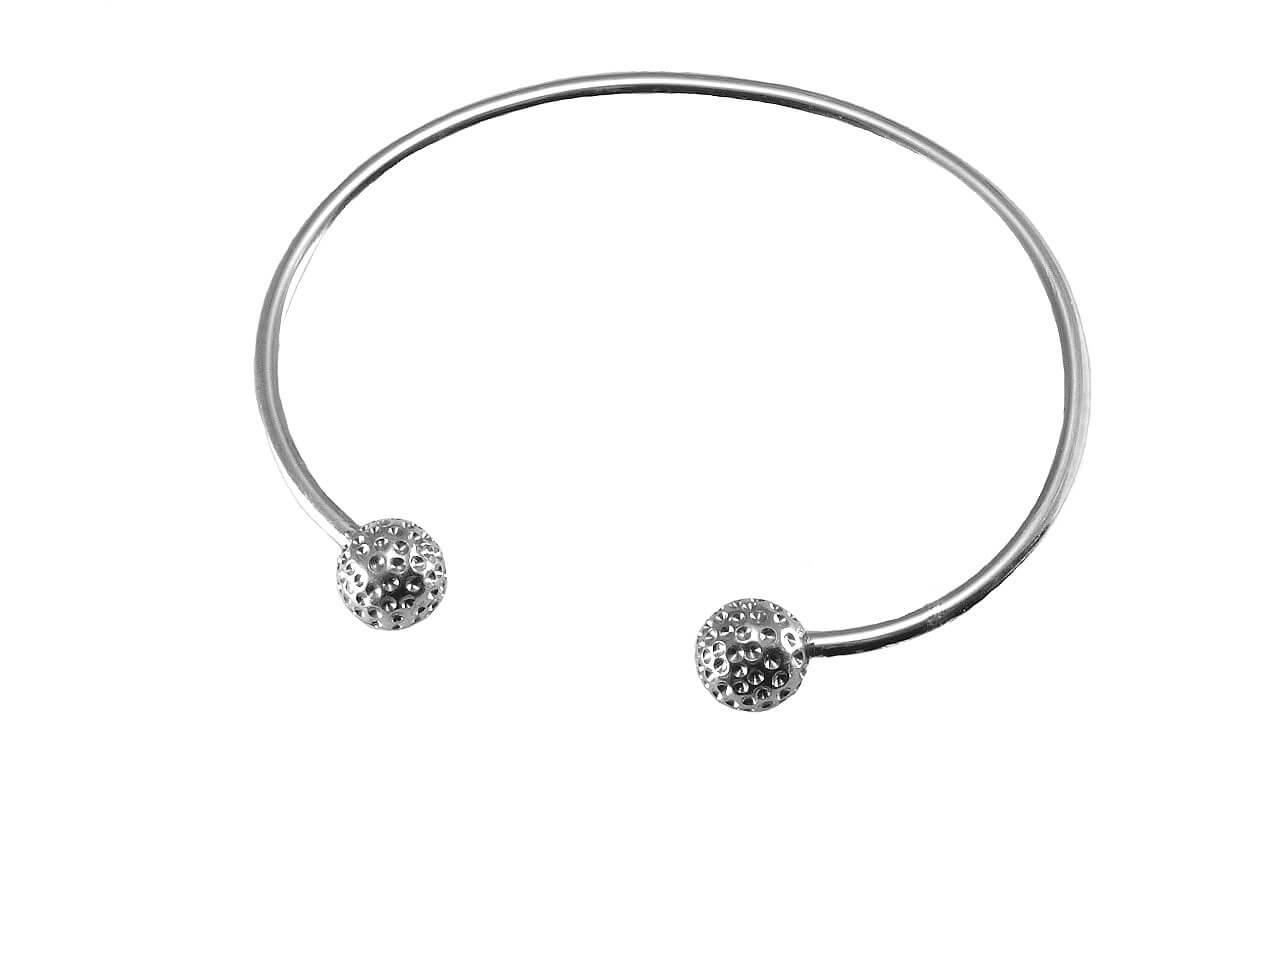 Add a Charm Bangle Bracelet, Sterling SilverKC181B